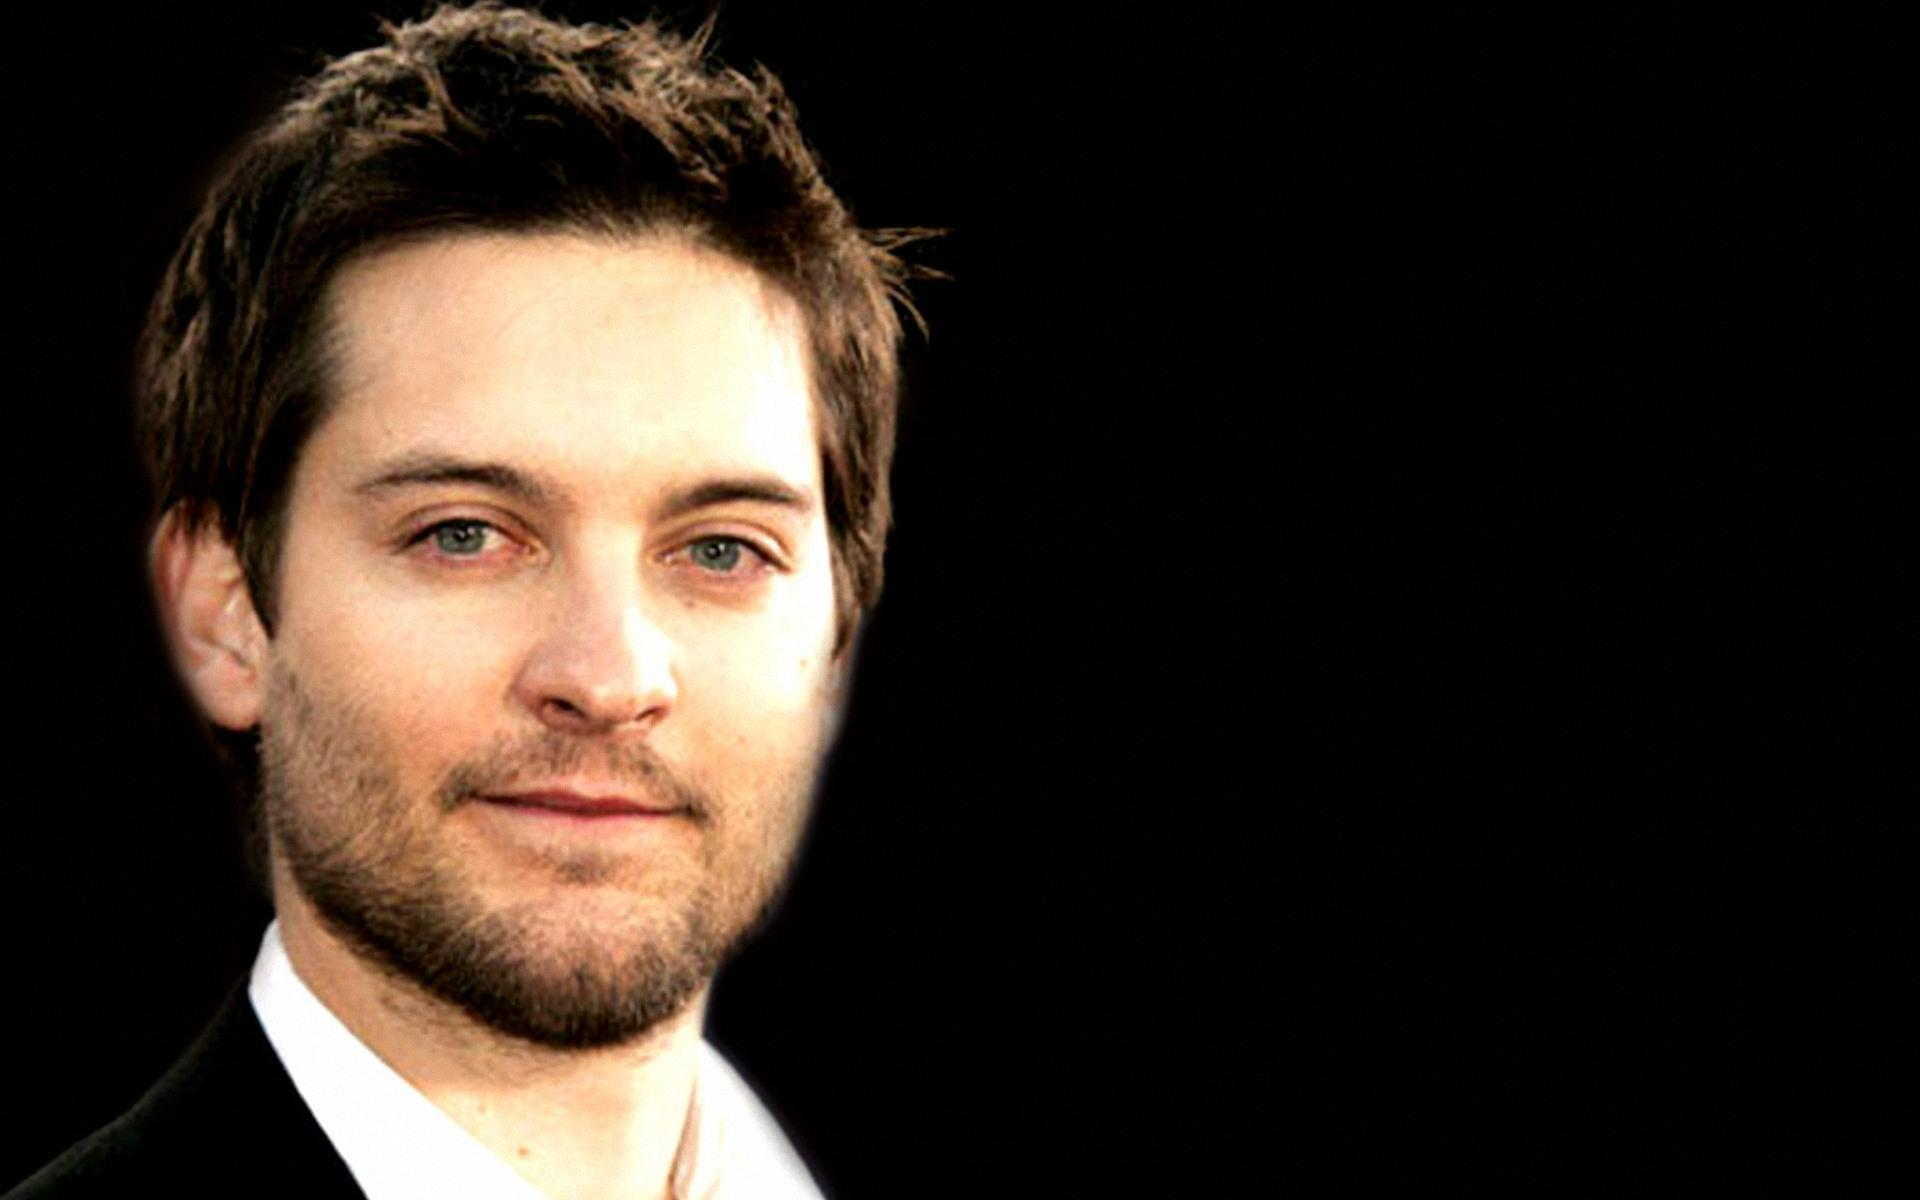 Pin Tobey Maguire 1152x864 Wallpapers